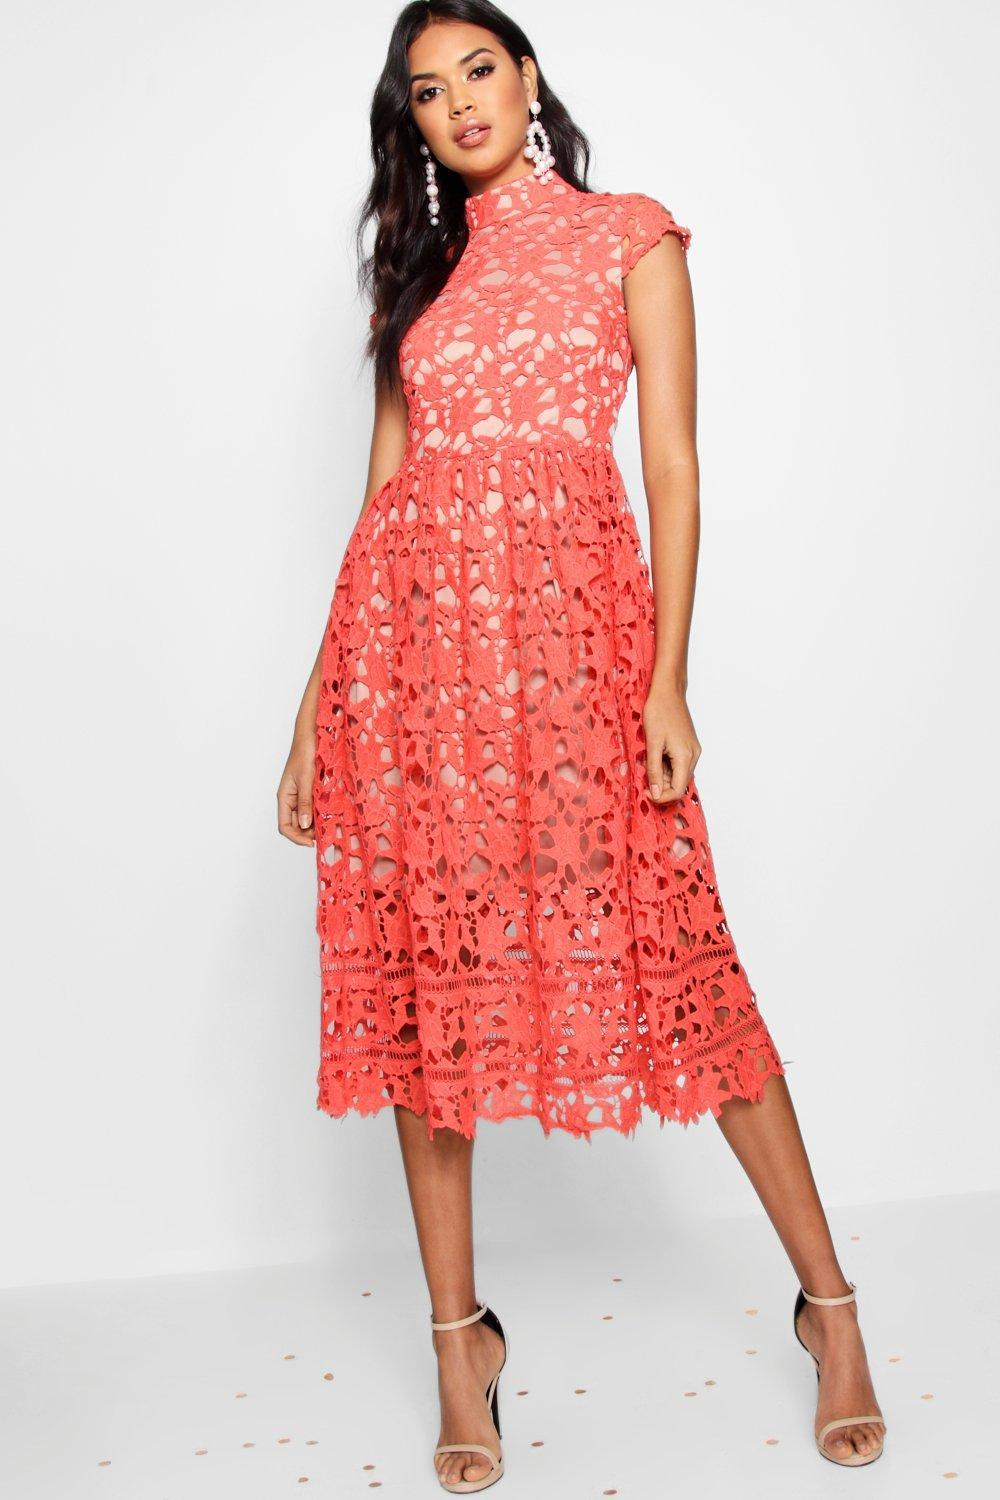 952cc4e0c80b7 Boohoo Boutique Lace High Neck Skater Dress in Red - Lyst